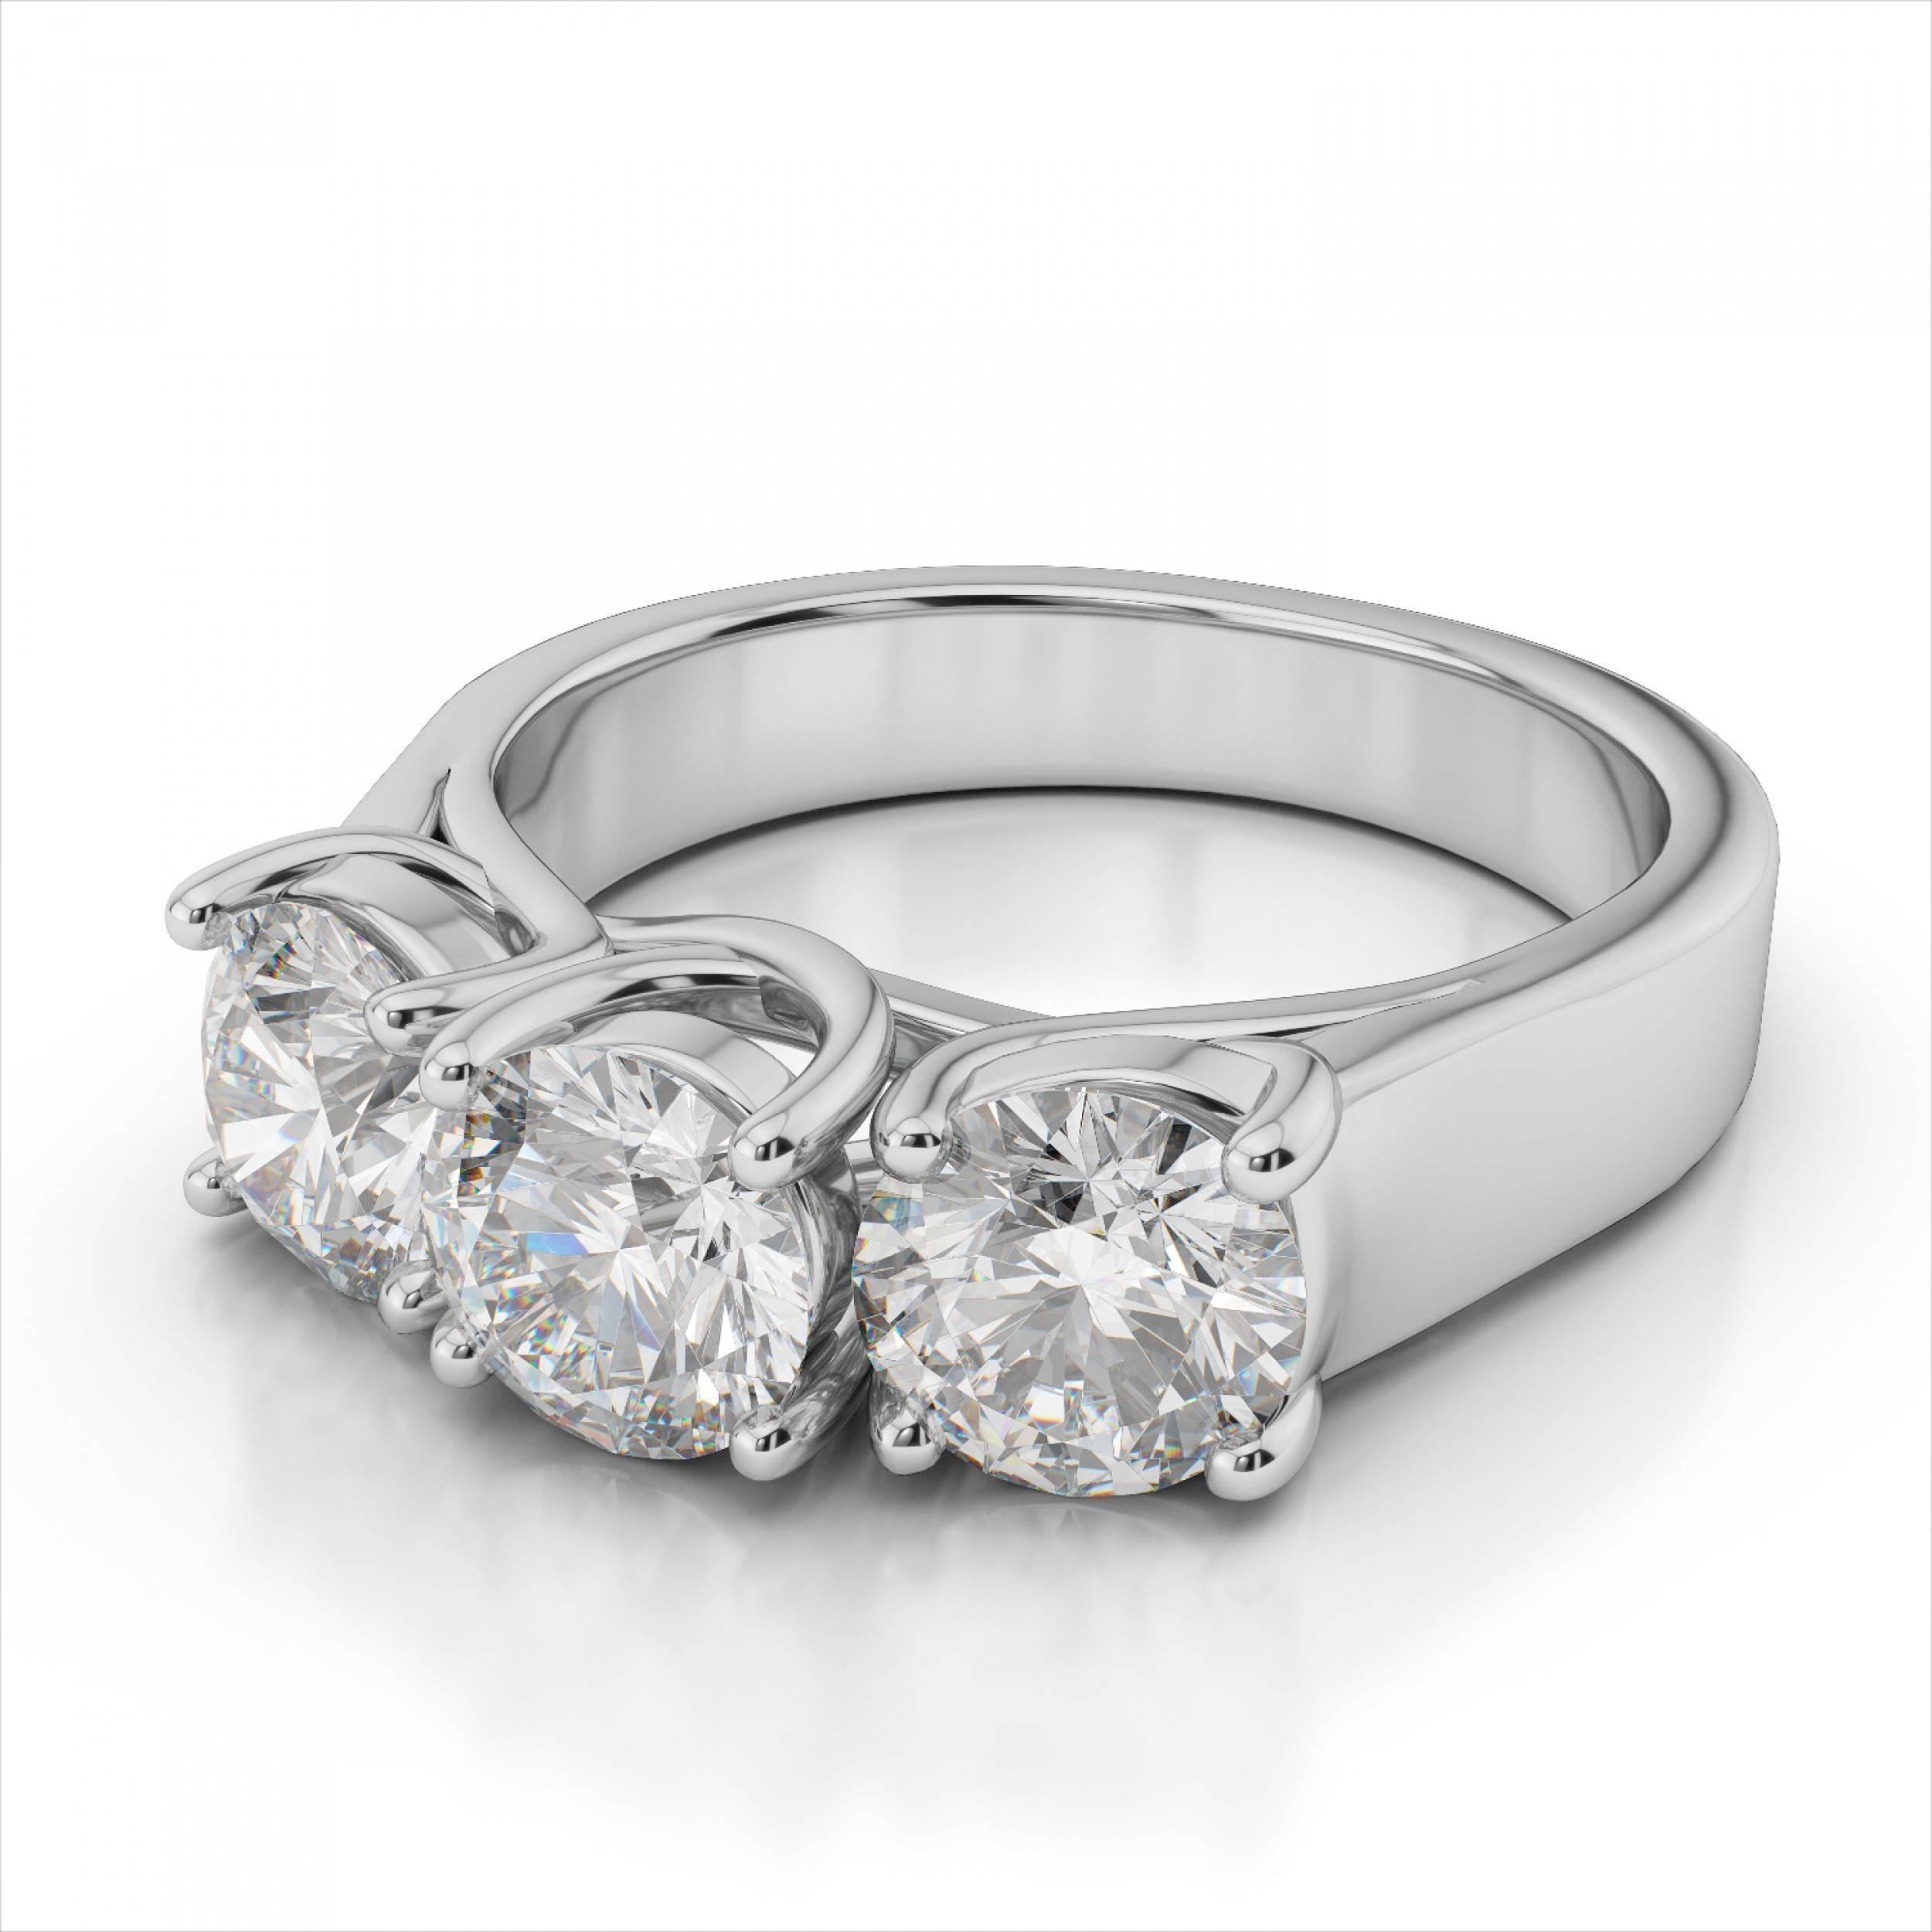 and tw bar wedding aniversary diamond view band gold by engagement anniversary stone round set rings or diamonds